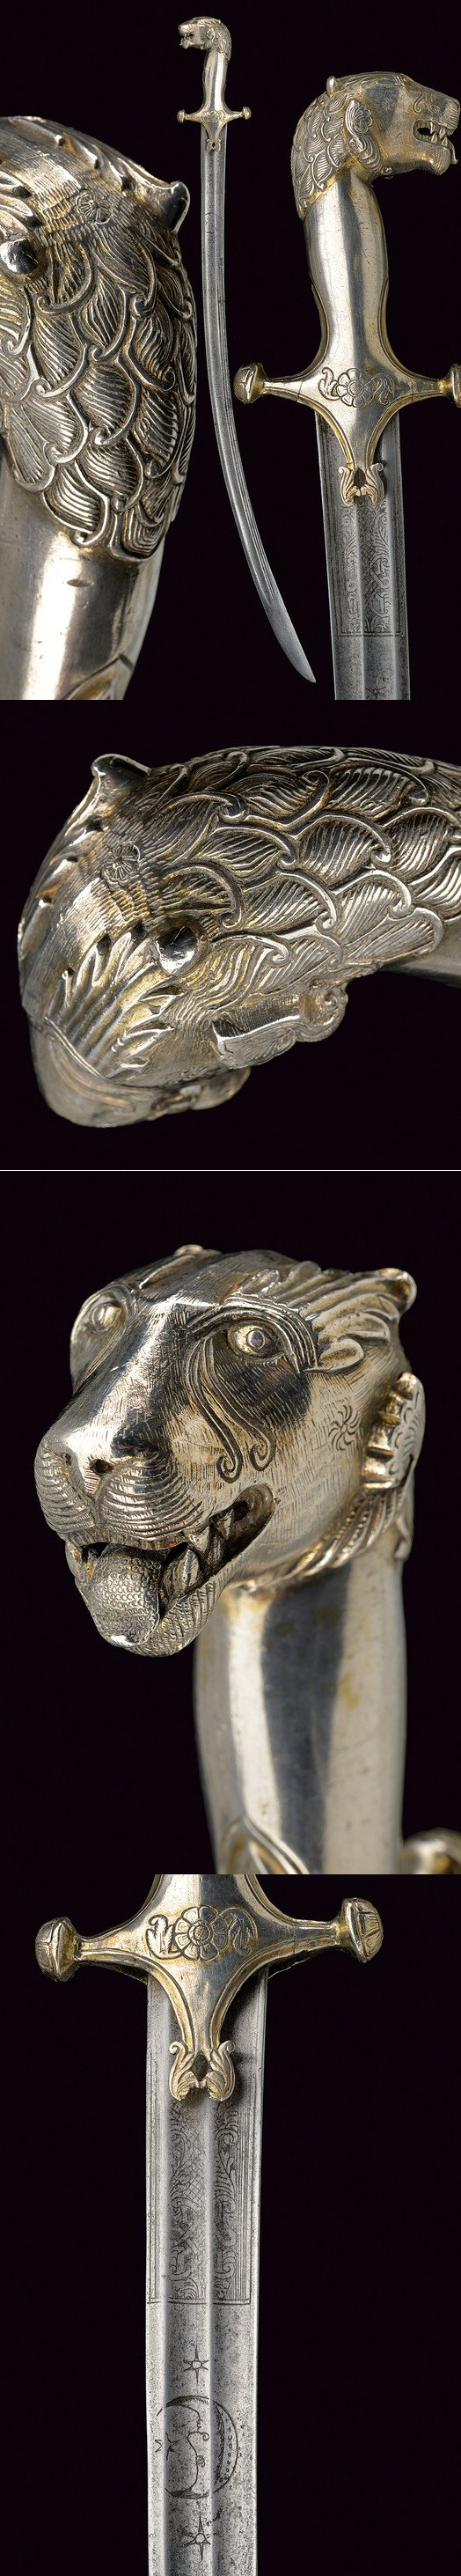 A silver hilted tulvar:dating: last quarter of the 18th Century provenance: India.